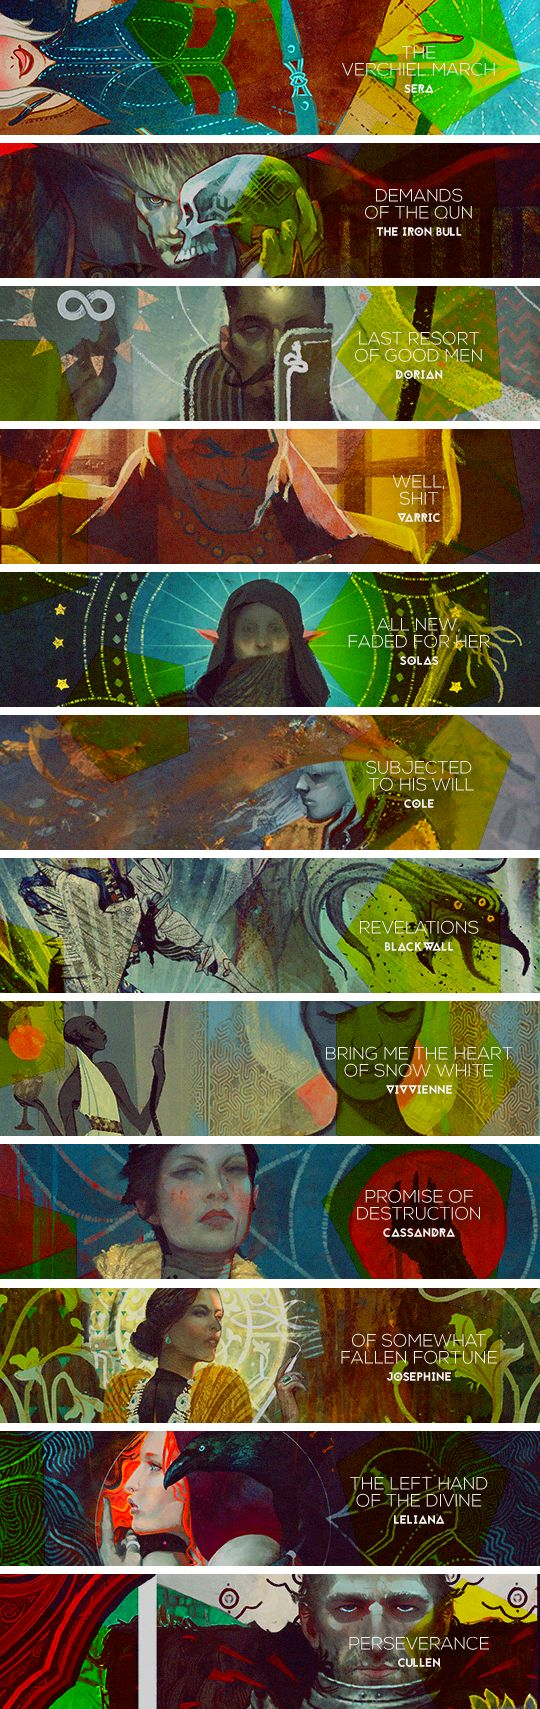 Dragon Age: Inquisition - Quests for the Inner Circle (Still kicking myself over the cleverness of Solas' anagram...)